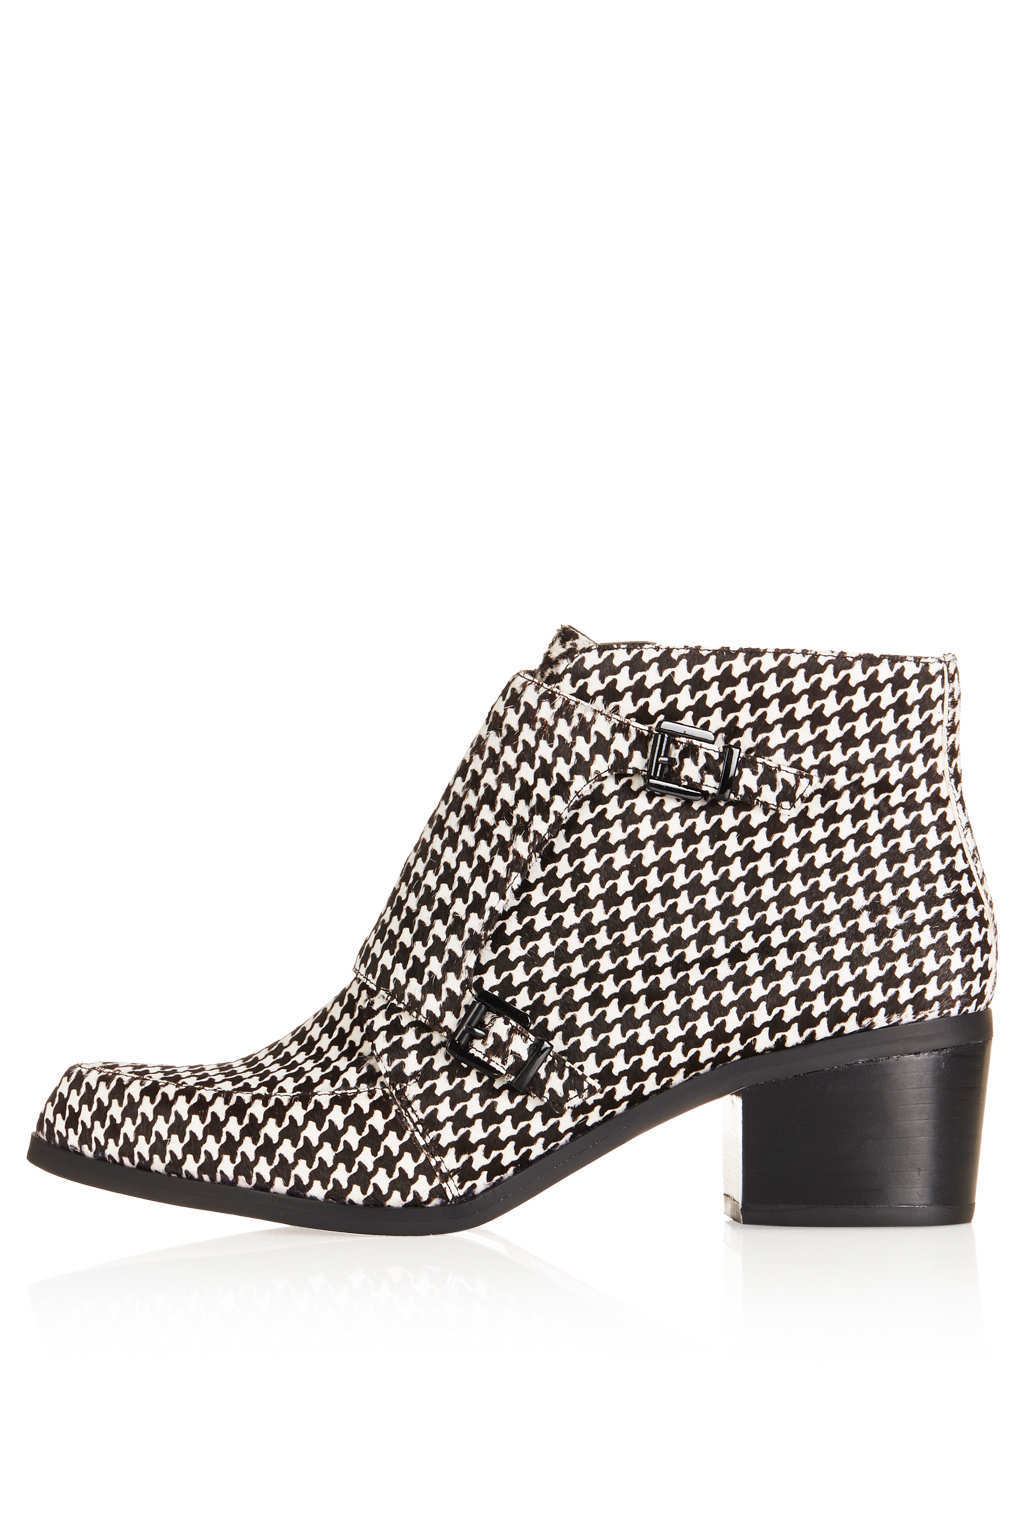 Autumn/Winter Ankle Boots From Topshop